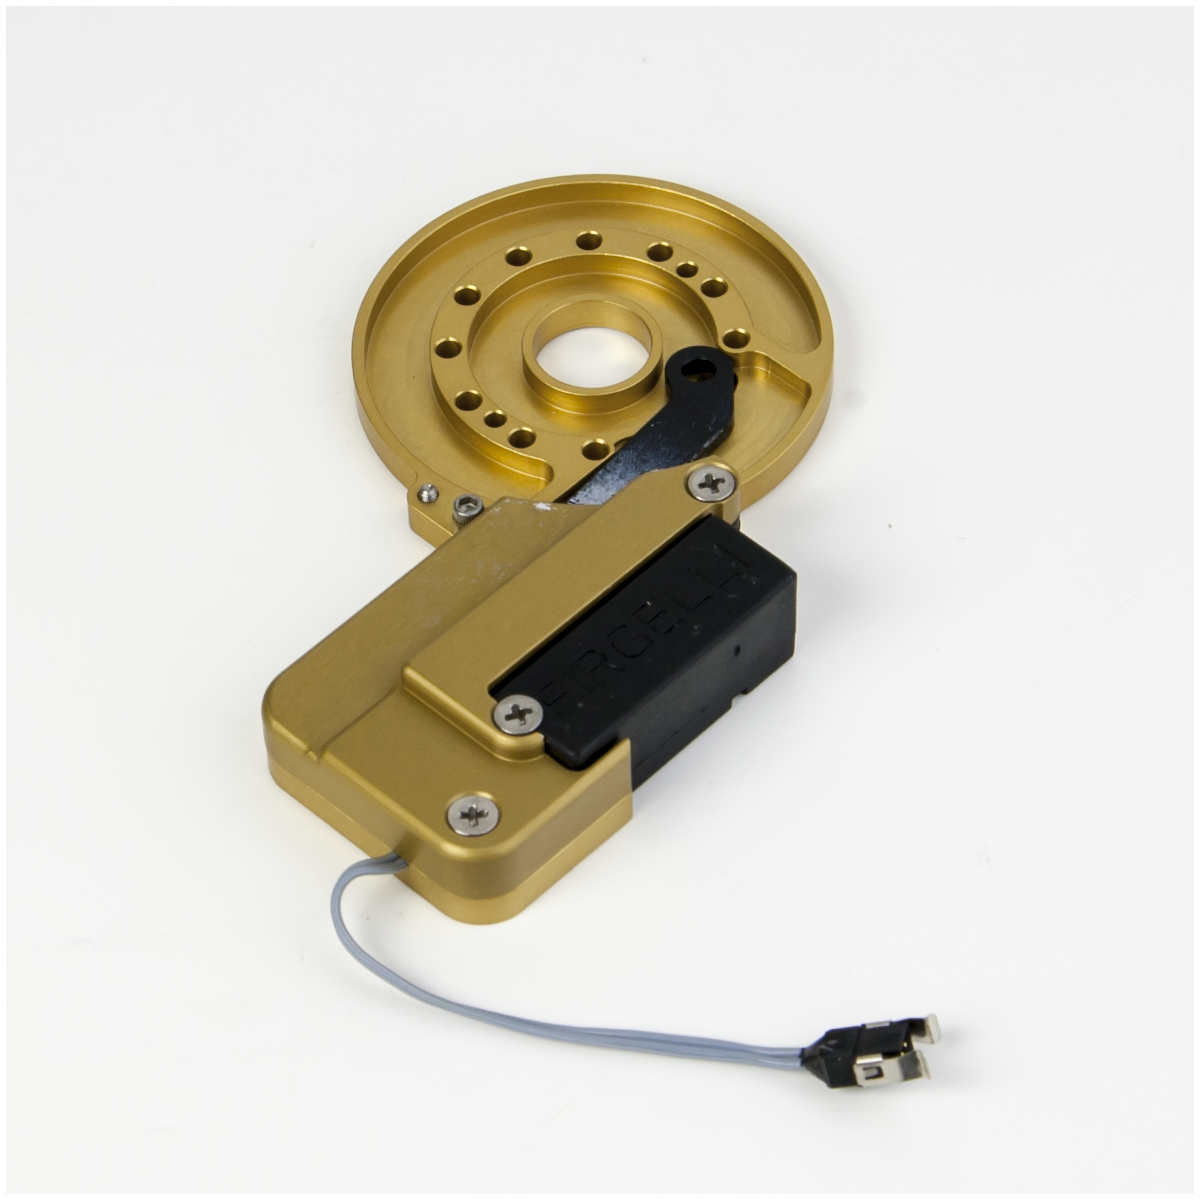 Electric Lock Converstion Kit for SJ90